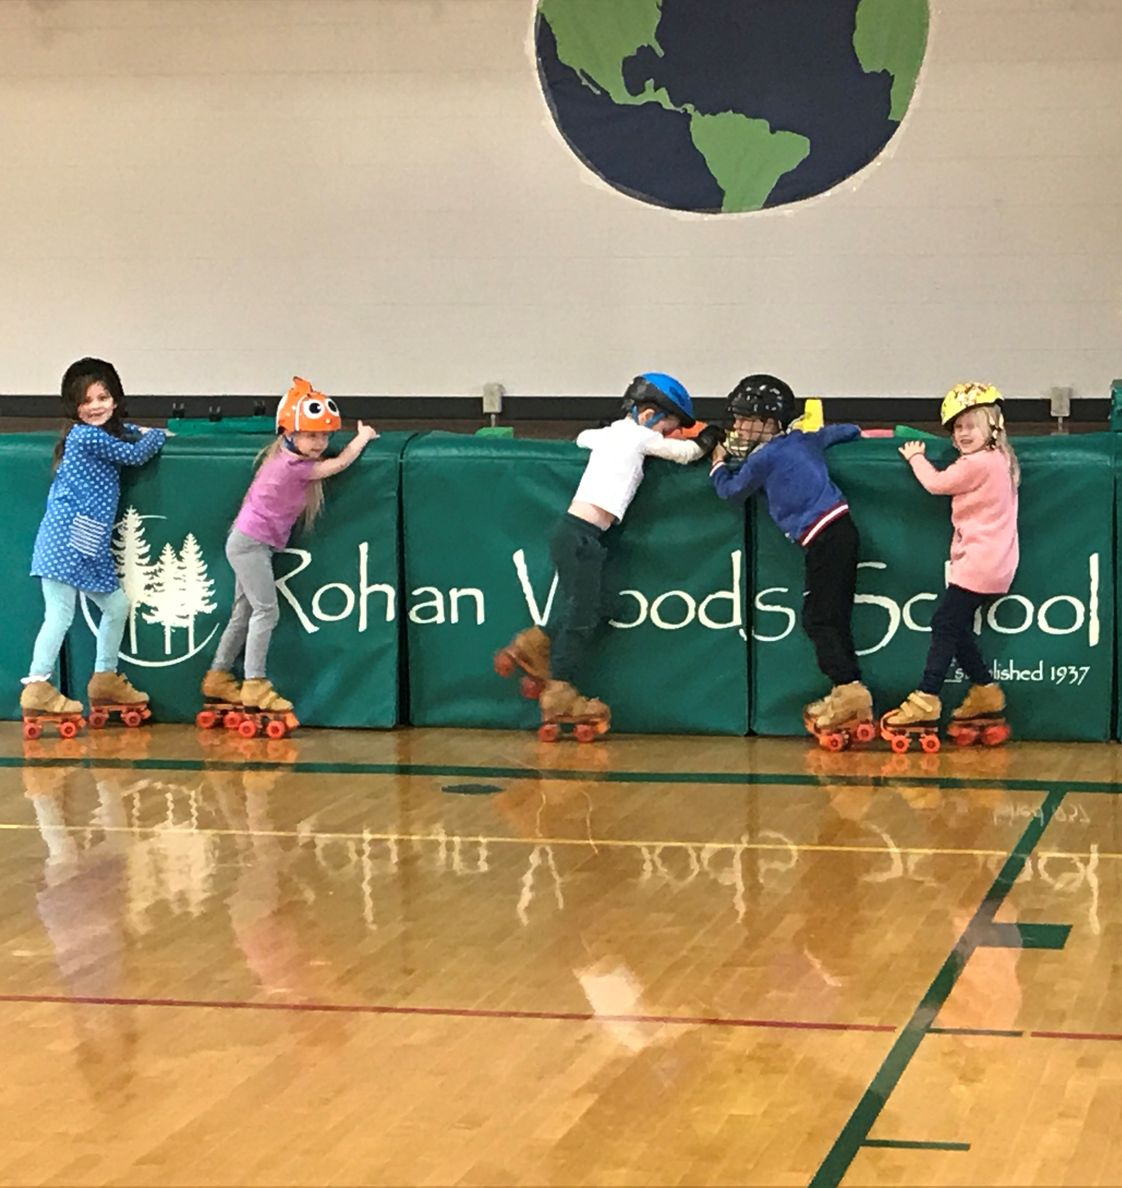 Rohan Woods School Photo - Whether learning to Roller Skate or tackling a Project in Senior Kindergarten, our students have an adventure every day.